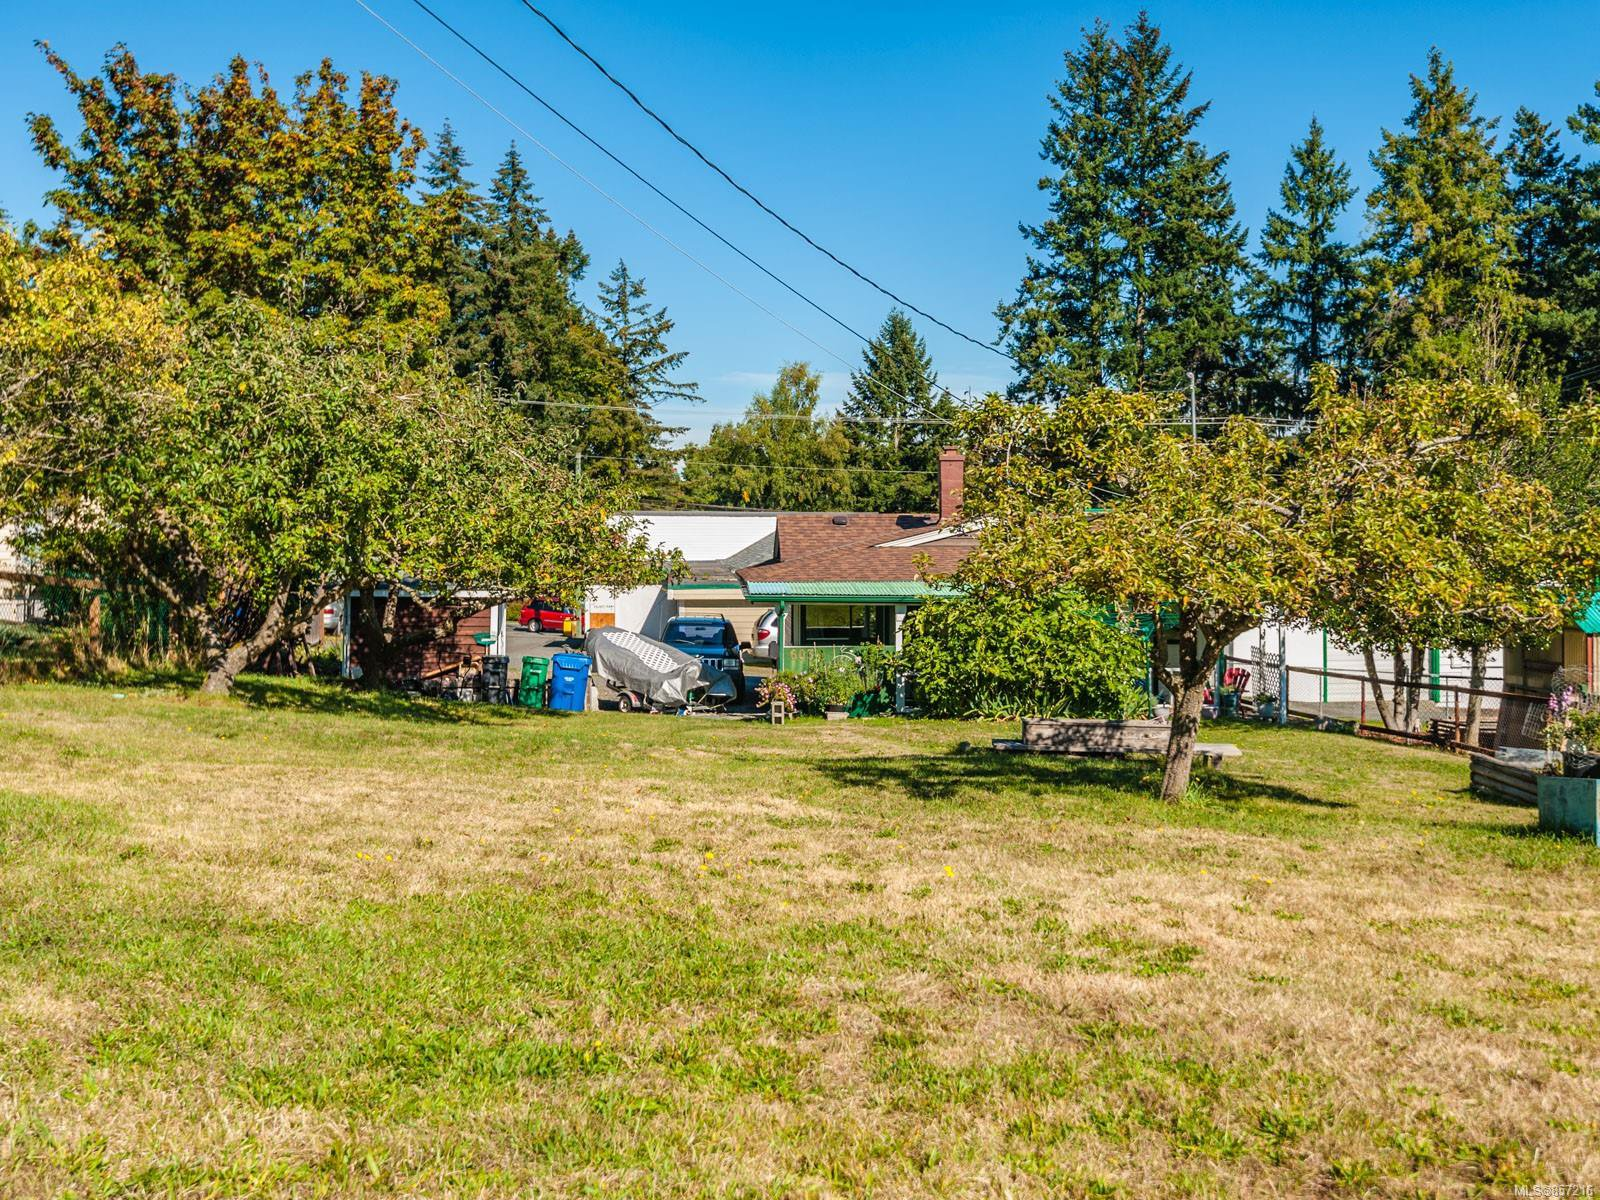 Main Photo: 603 FIRST St in : Na University District House for sale (Nanaimo)  : MLS®# 857216